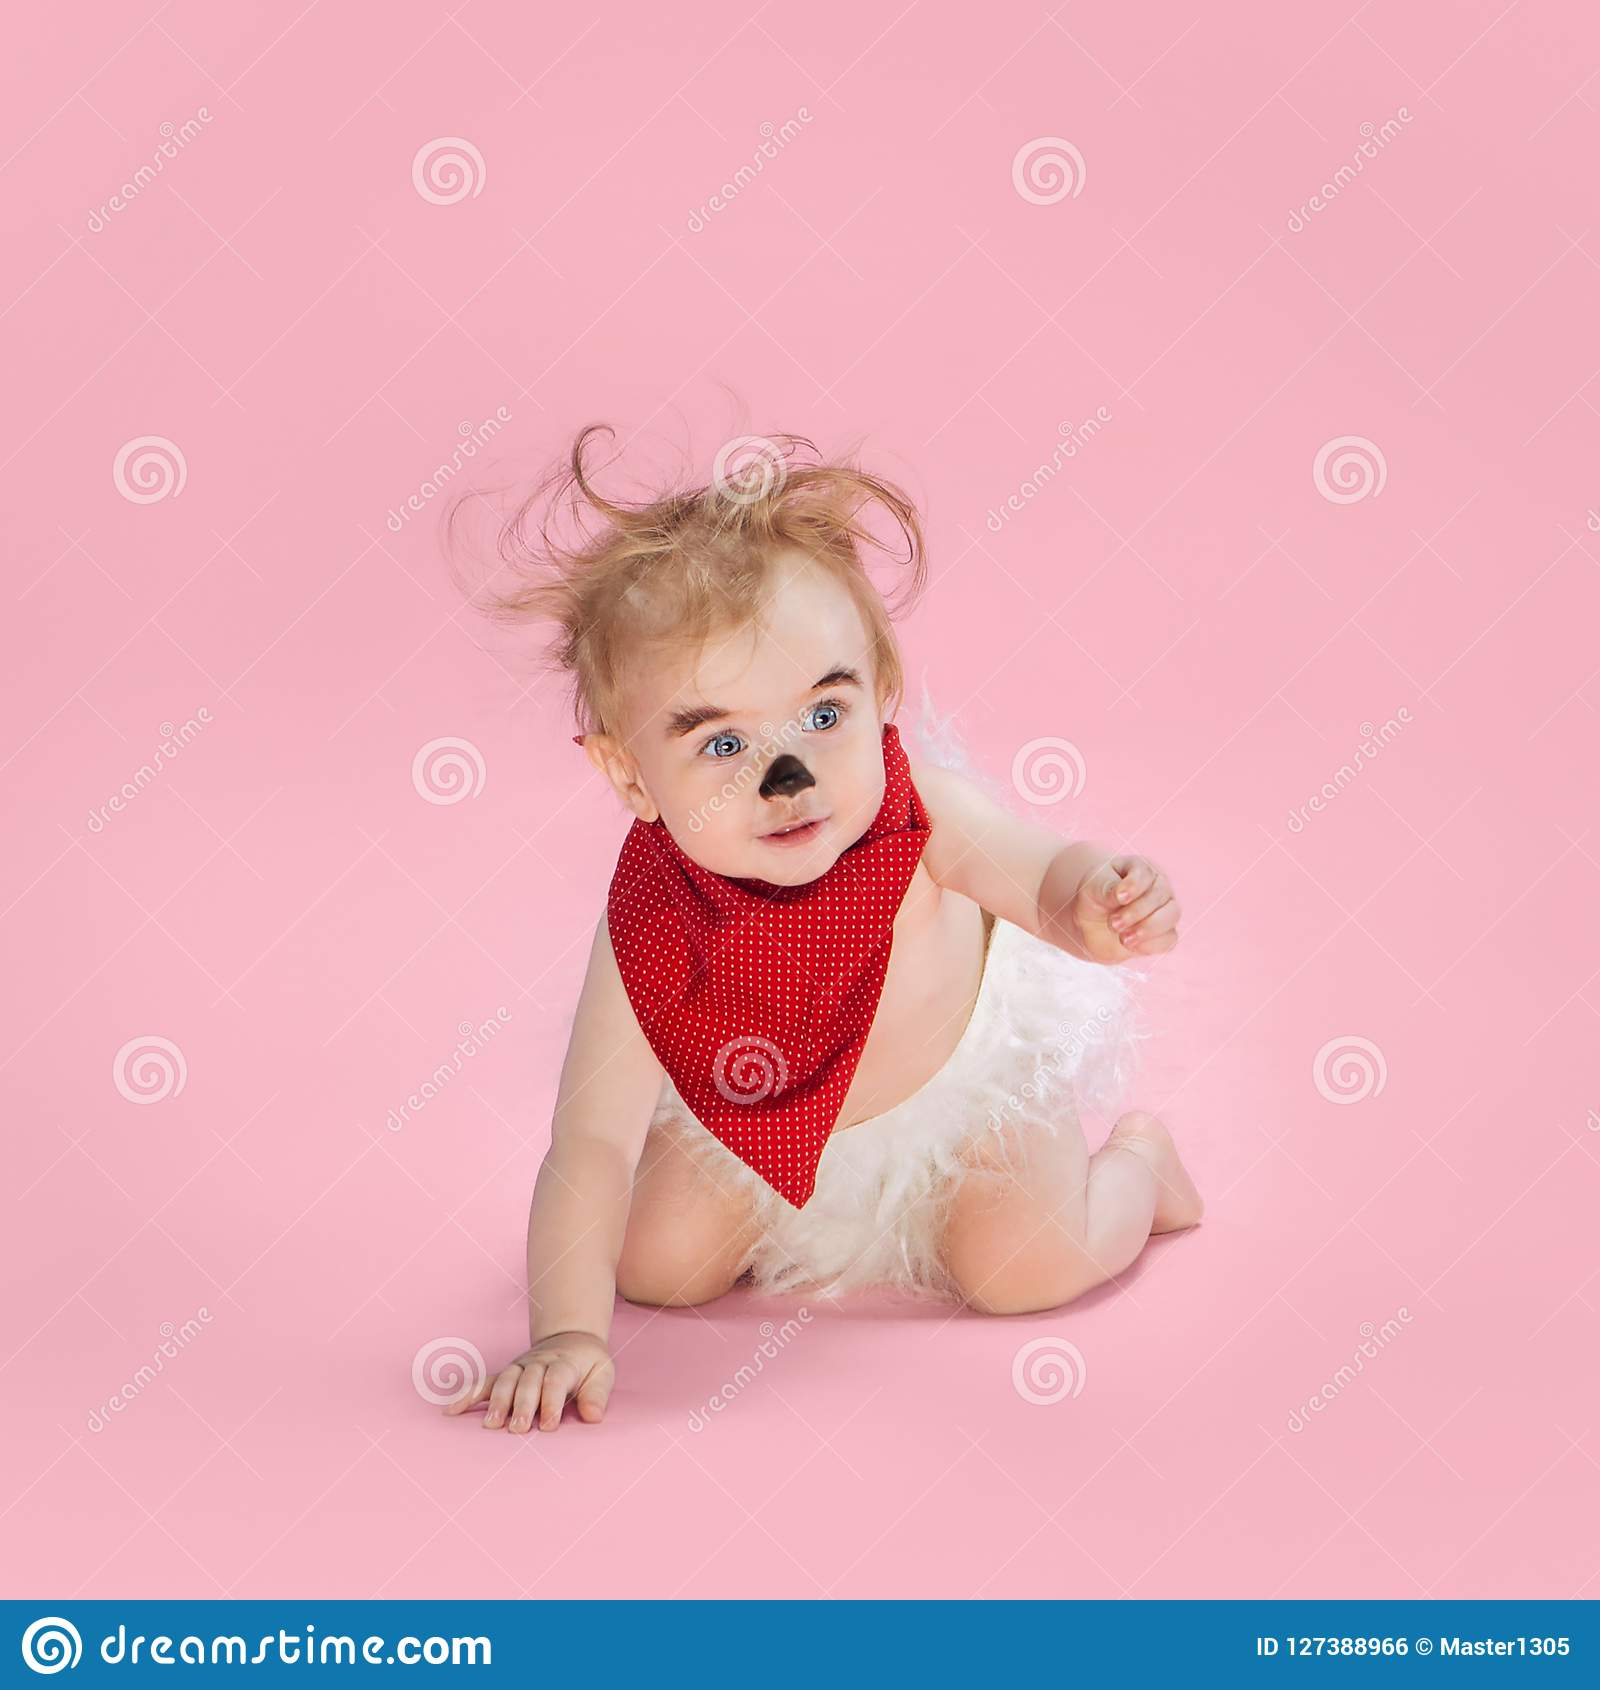 newborn baby girl wearing a halloween costume stock photo - image of